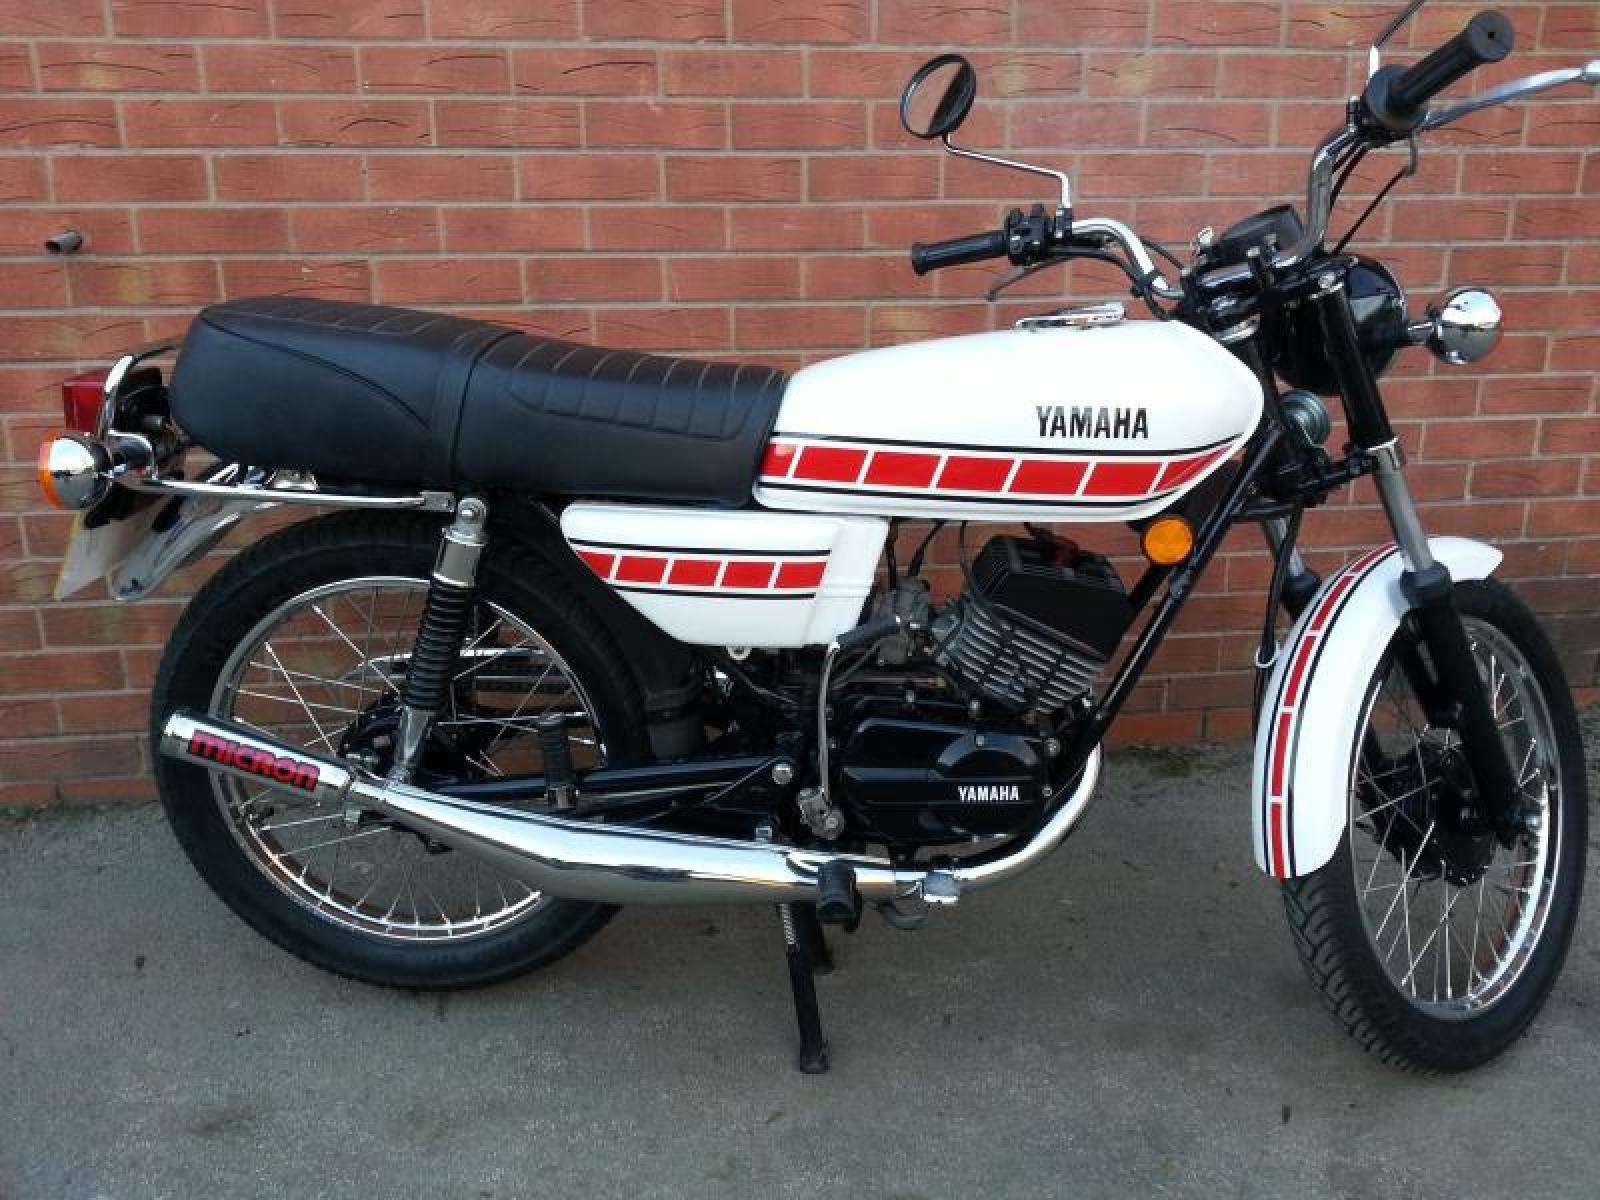 1980 Yamaha 100 Motorcycles for sale  SmartCycleGuidecom